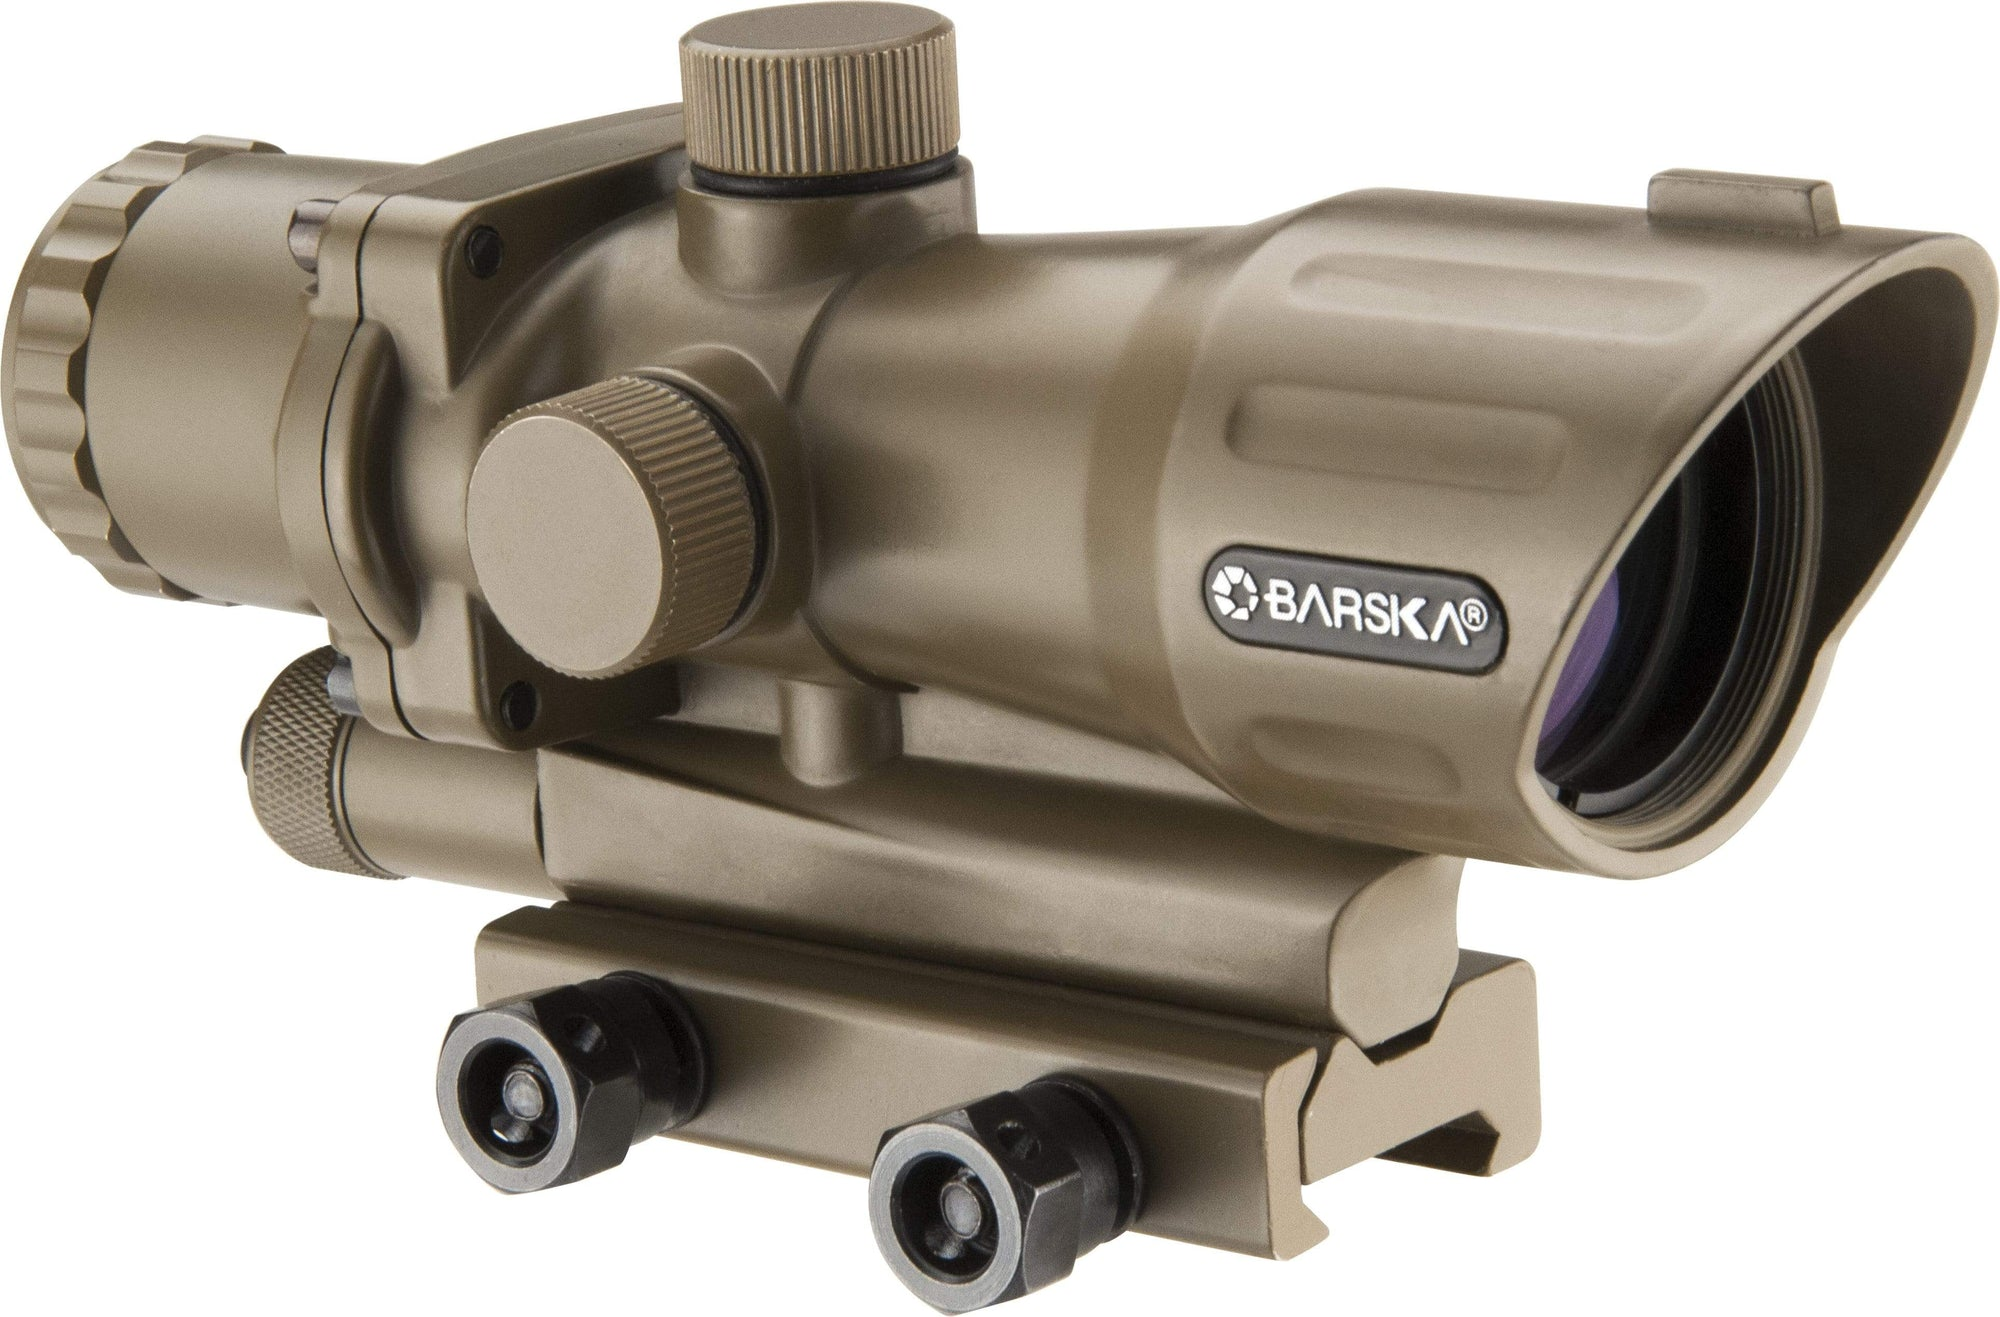 Barska 4 x 32mm IR AR-15/M-16 Electro Sight Tan (FDE) Armadillo Safe and Vault